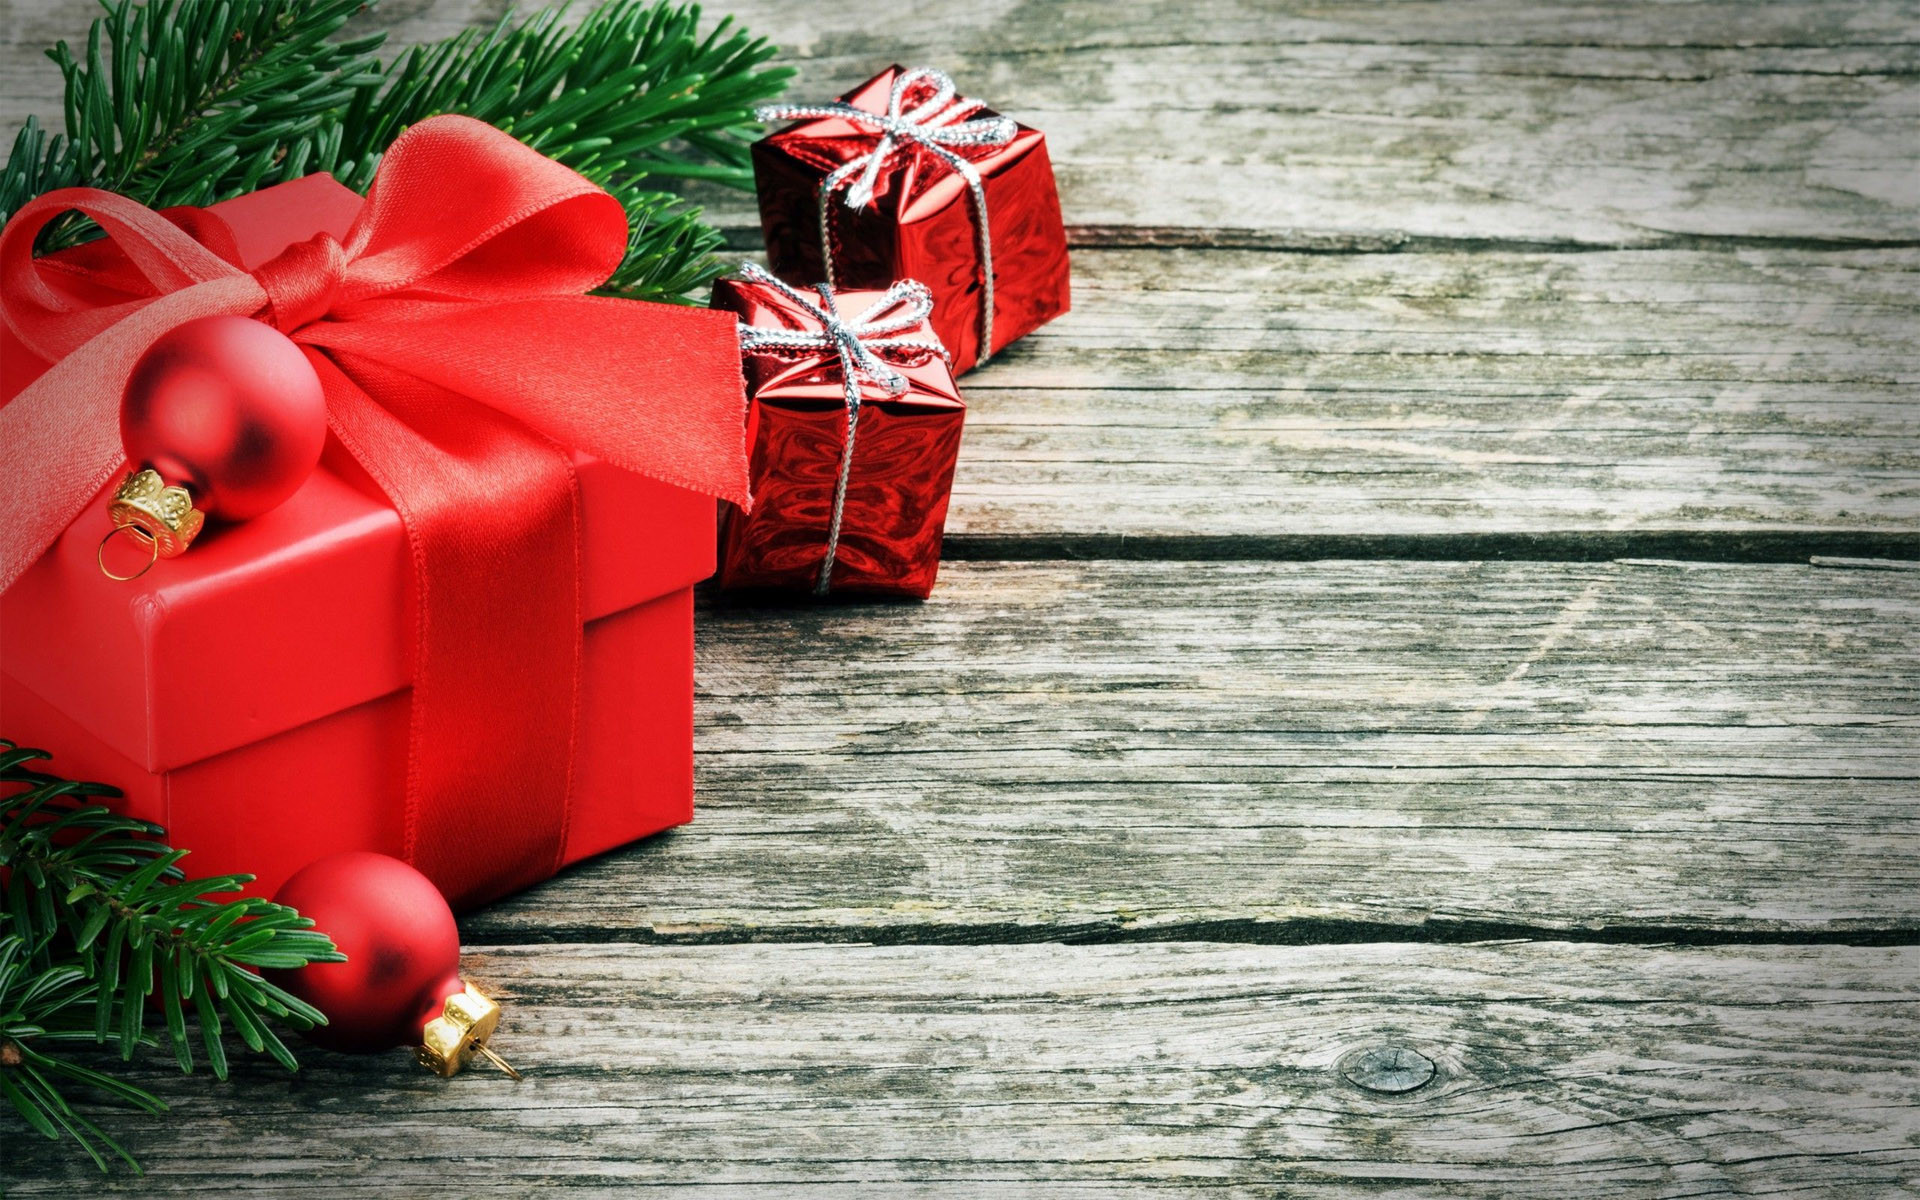 Res: 1920x1200, Red Christmas Presents HD Wallpaper